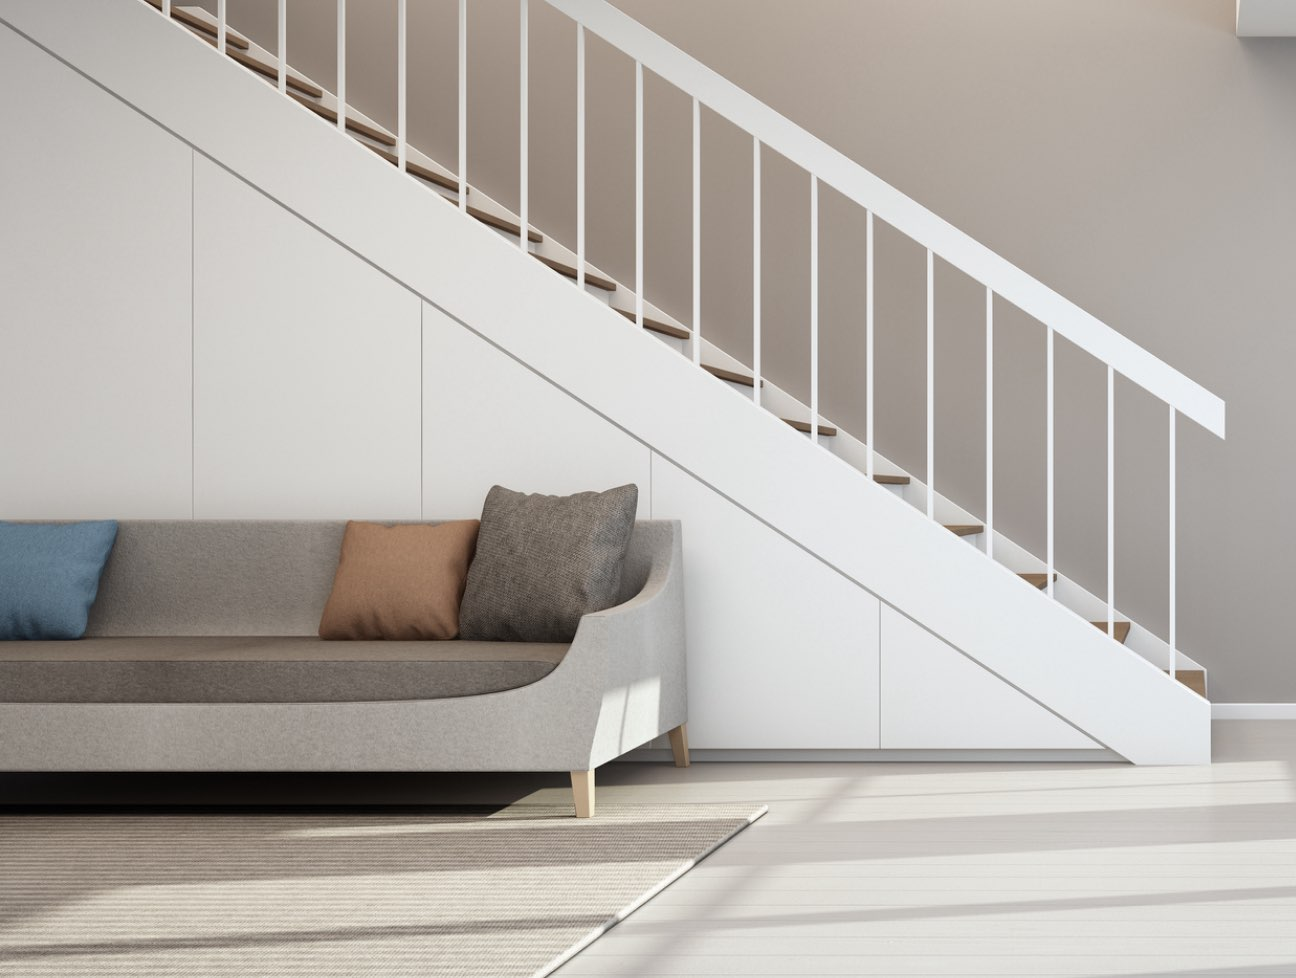 House interior with couch and stairs